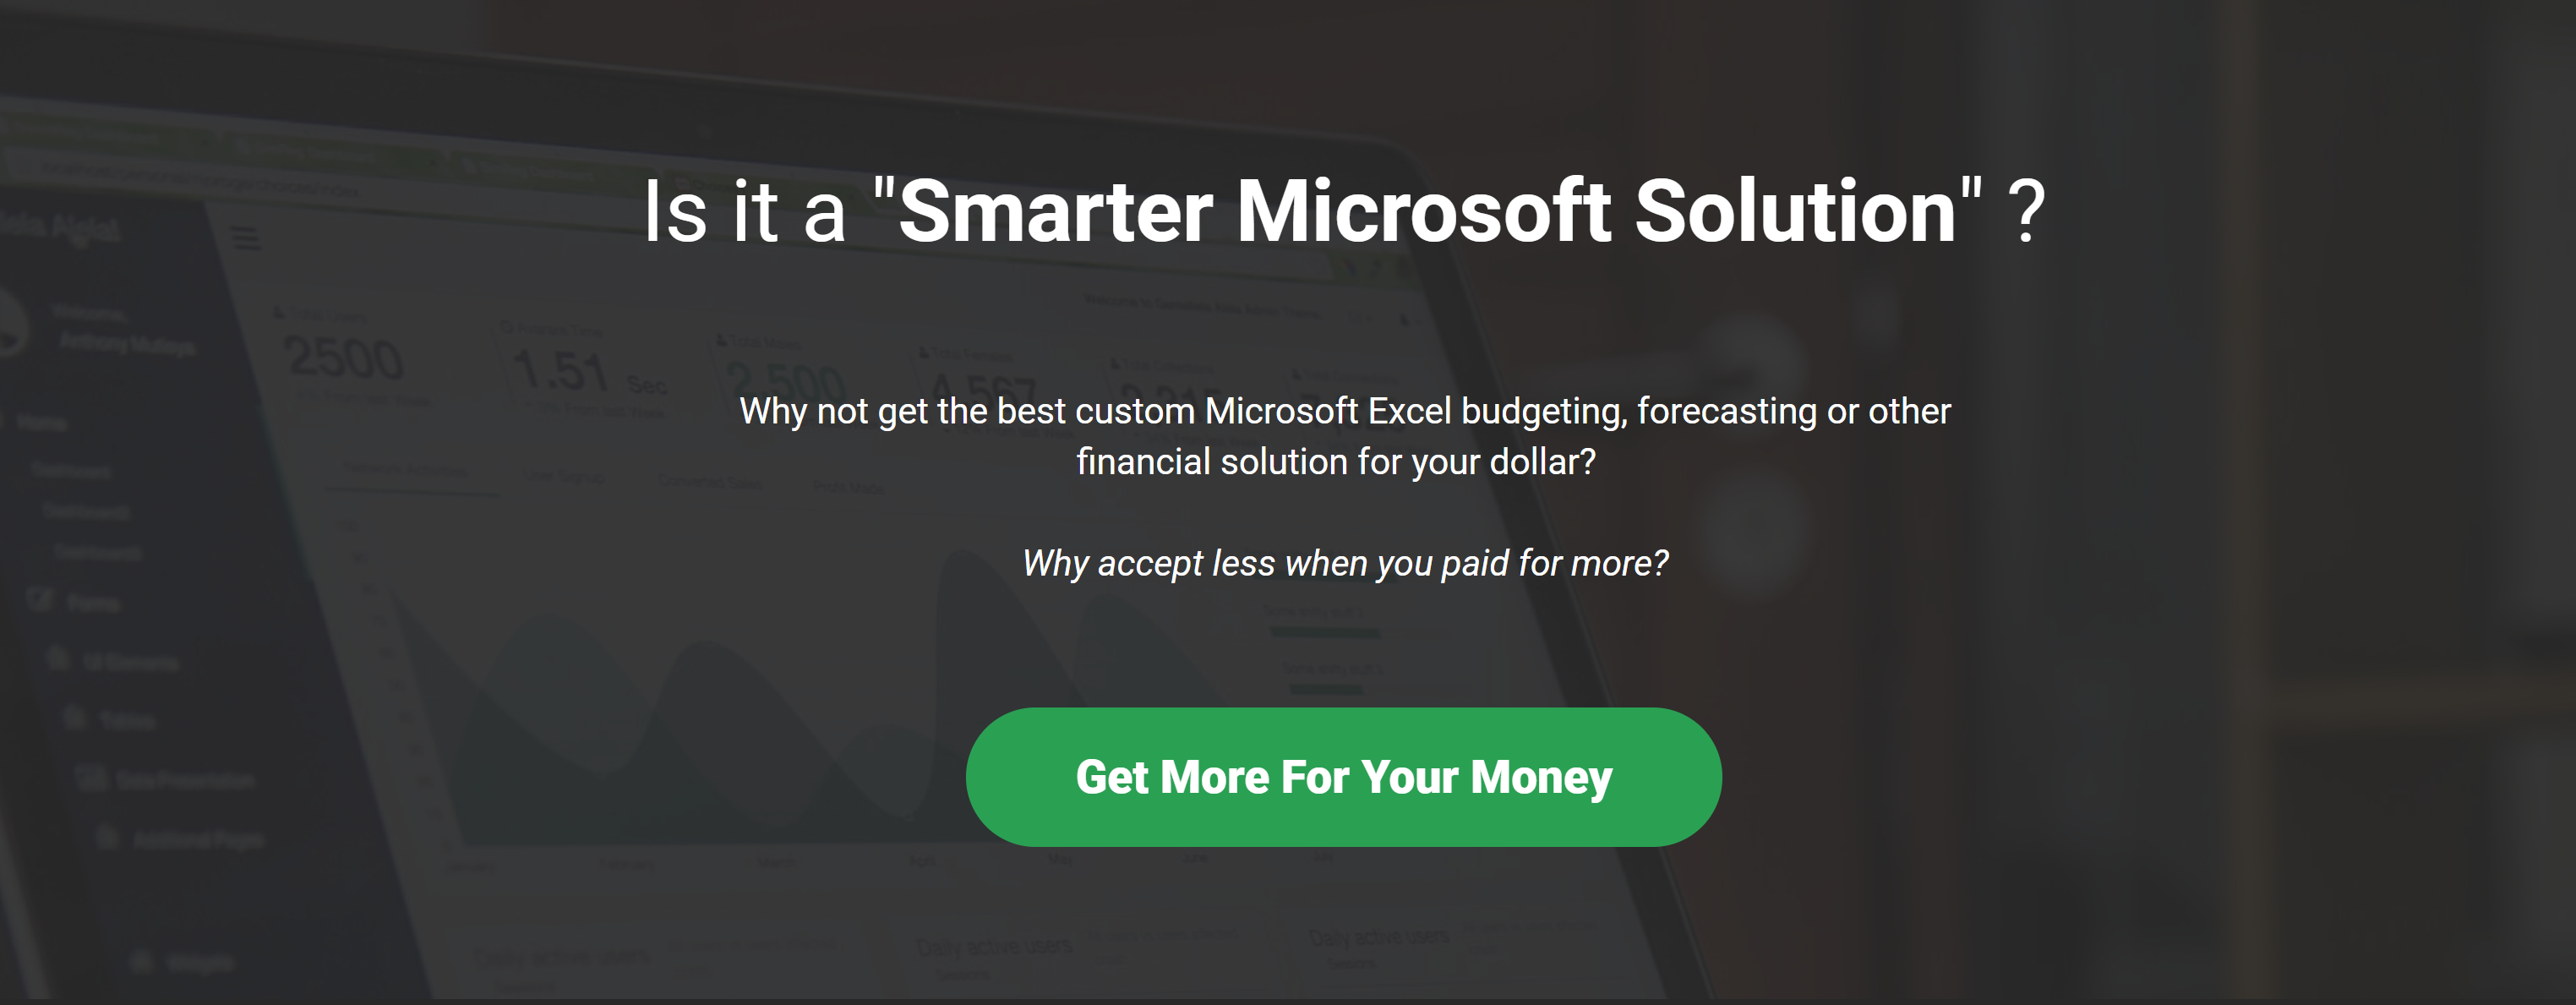 Is it a Smarter Microsoft Solution?